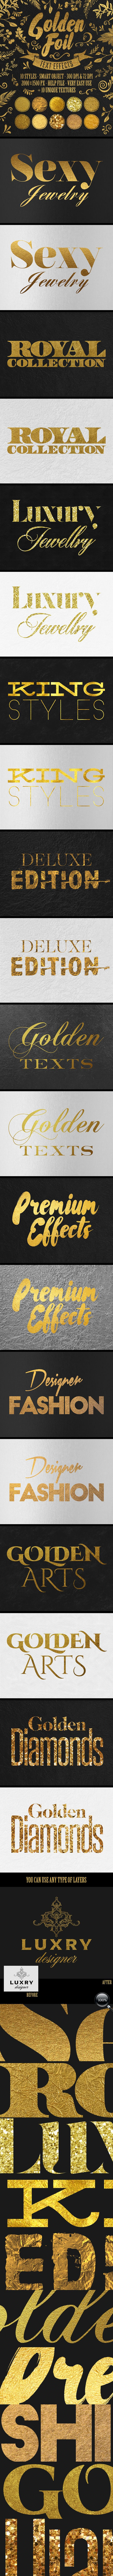 Gold Text Effects #shiny #hand lettering #platinum • Download ➝ https://graphicriver.net/item/gold-text-effects/14344277?ref=pxcr